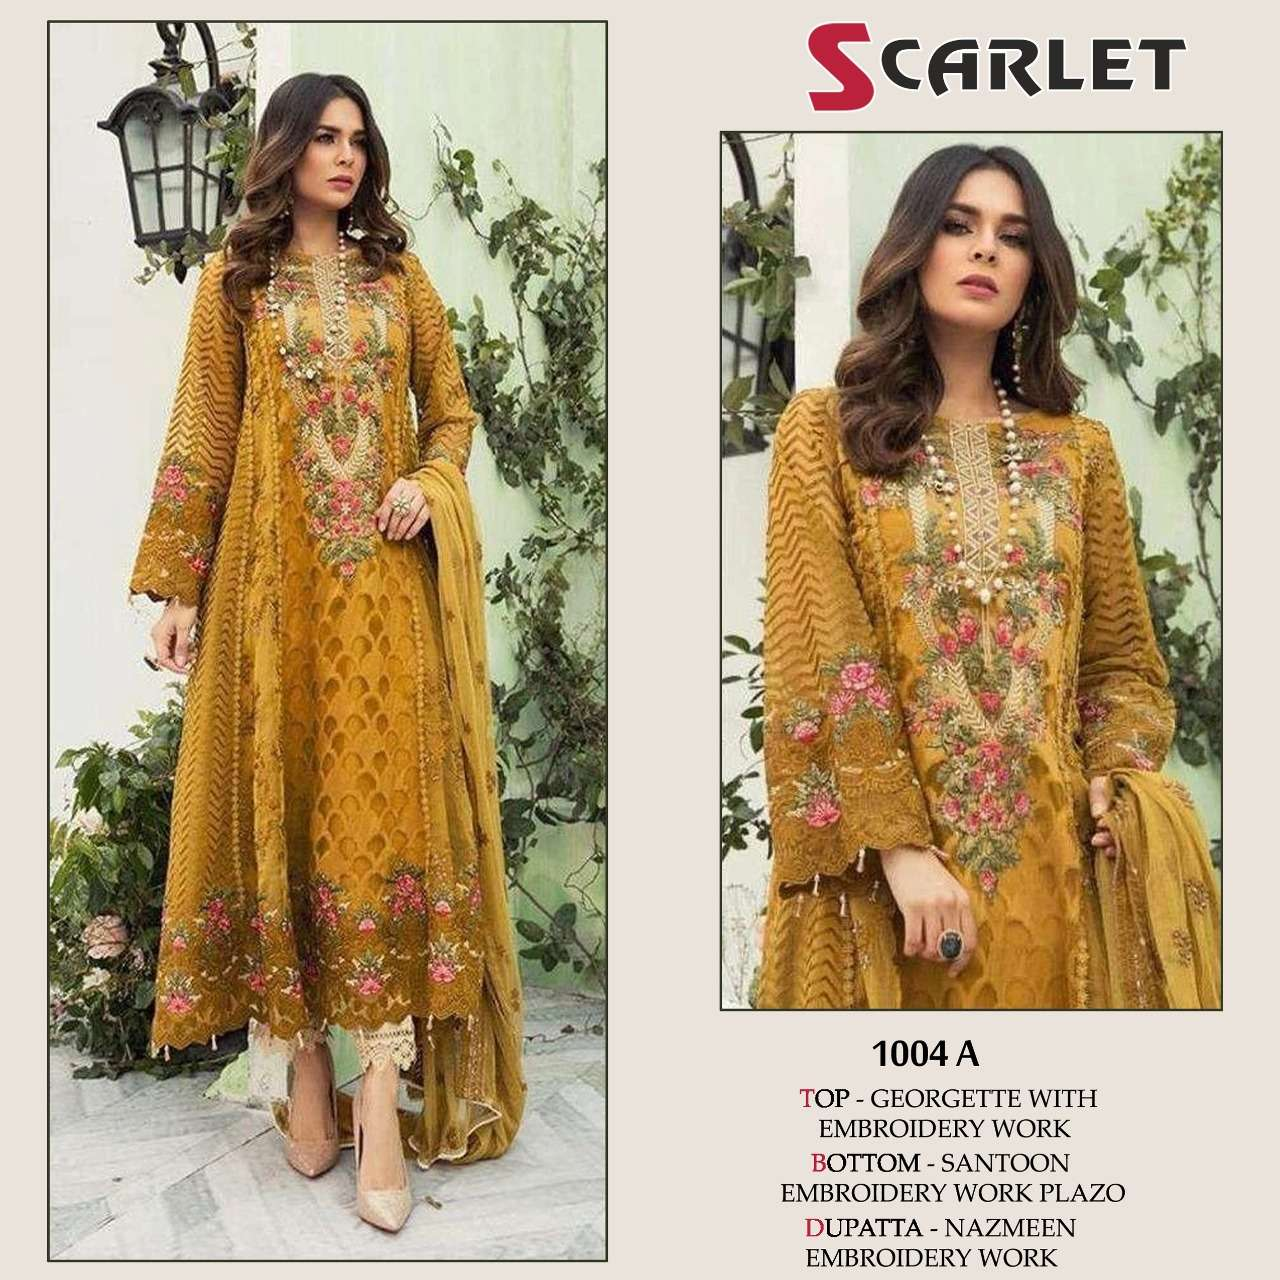 SCARLET 1004 A DESIGNER GEORGETTE WITH EMBROIDERY WORK PAKISTANI REPLICA SUITS SINGLES